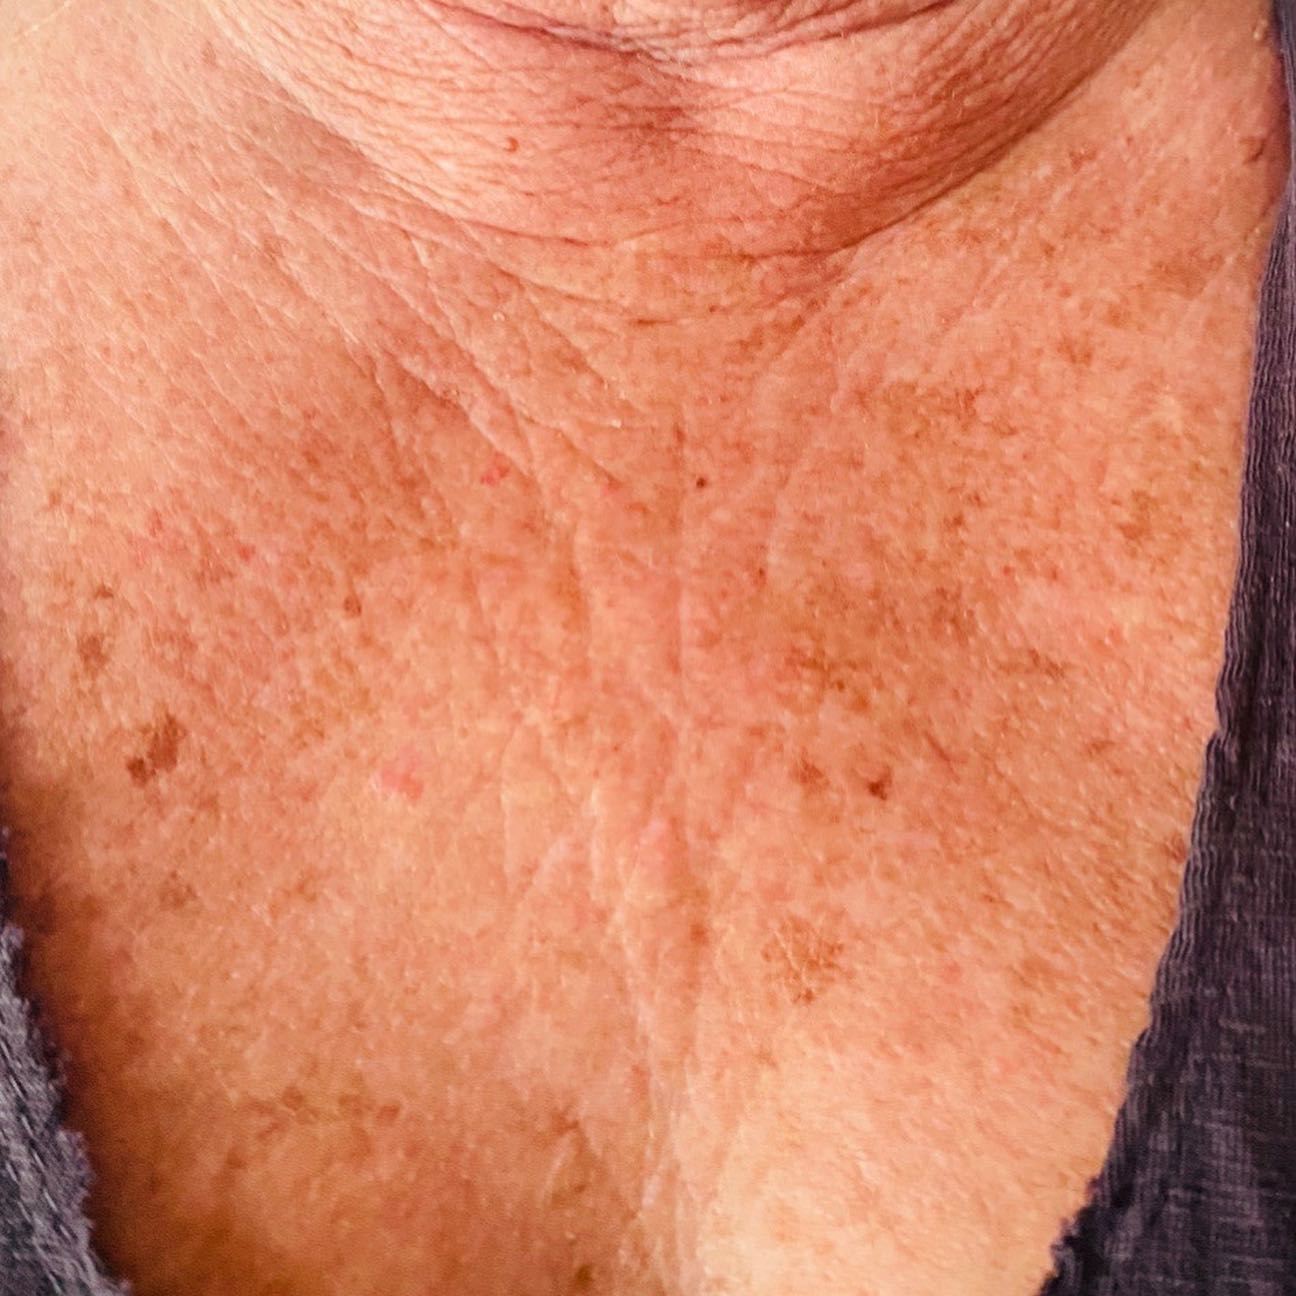 After IPL Therapy for Age Spots and Sun Spots